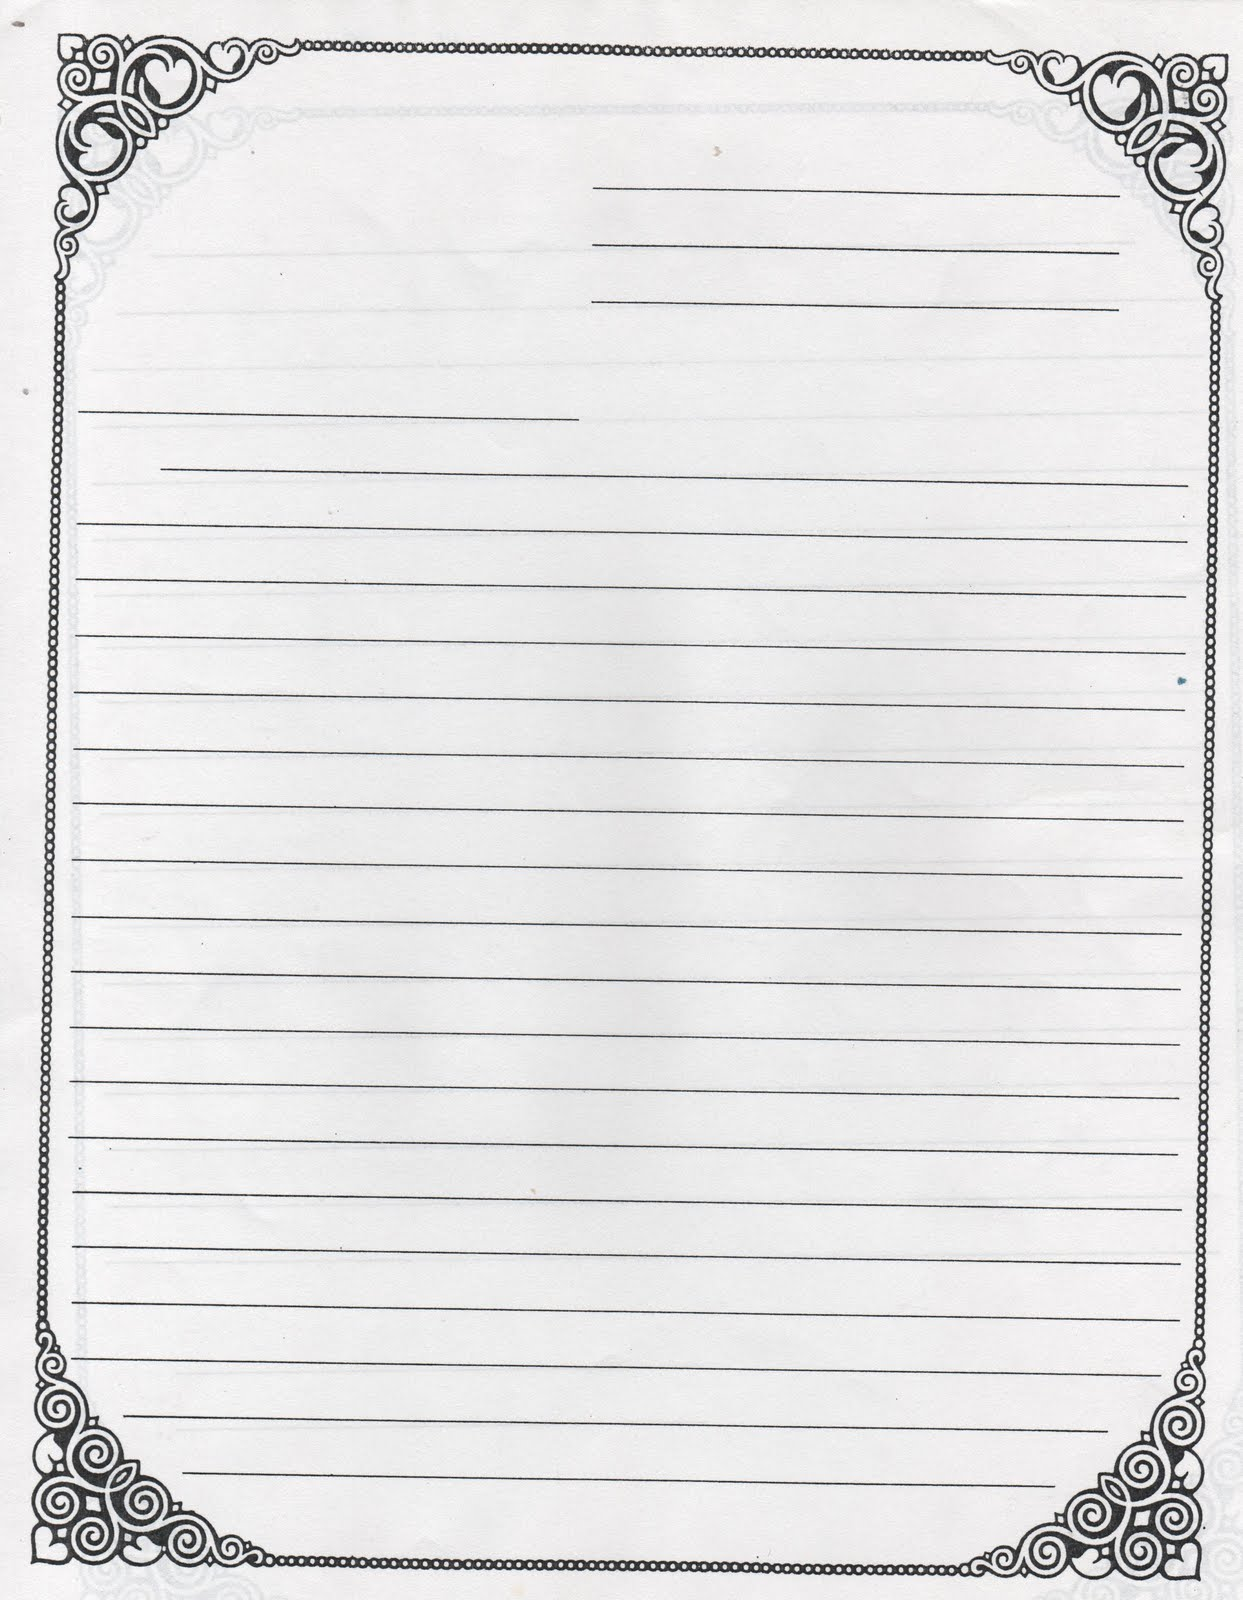 Letter Writing Paper Template from www.printablee.com